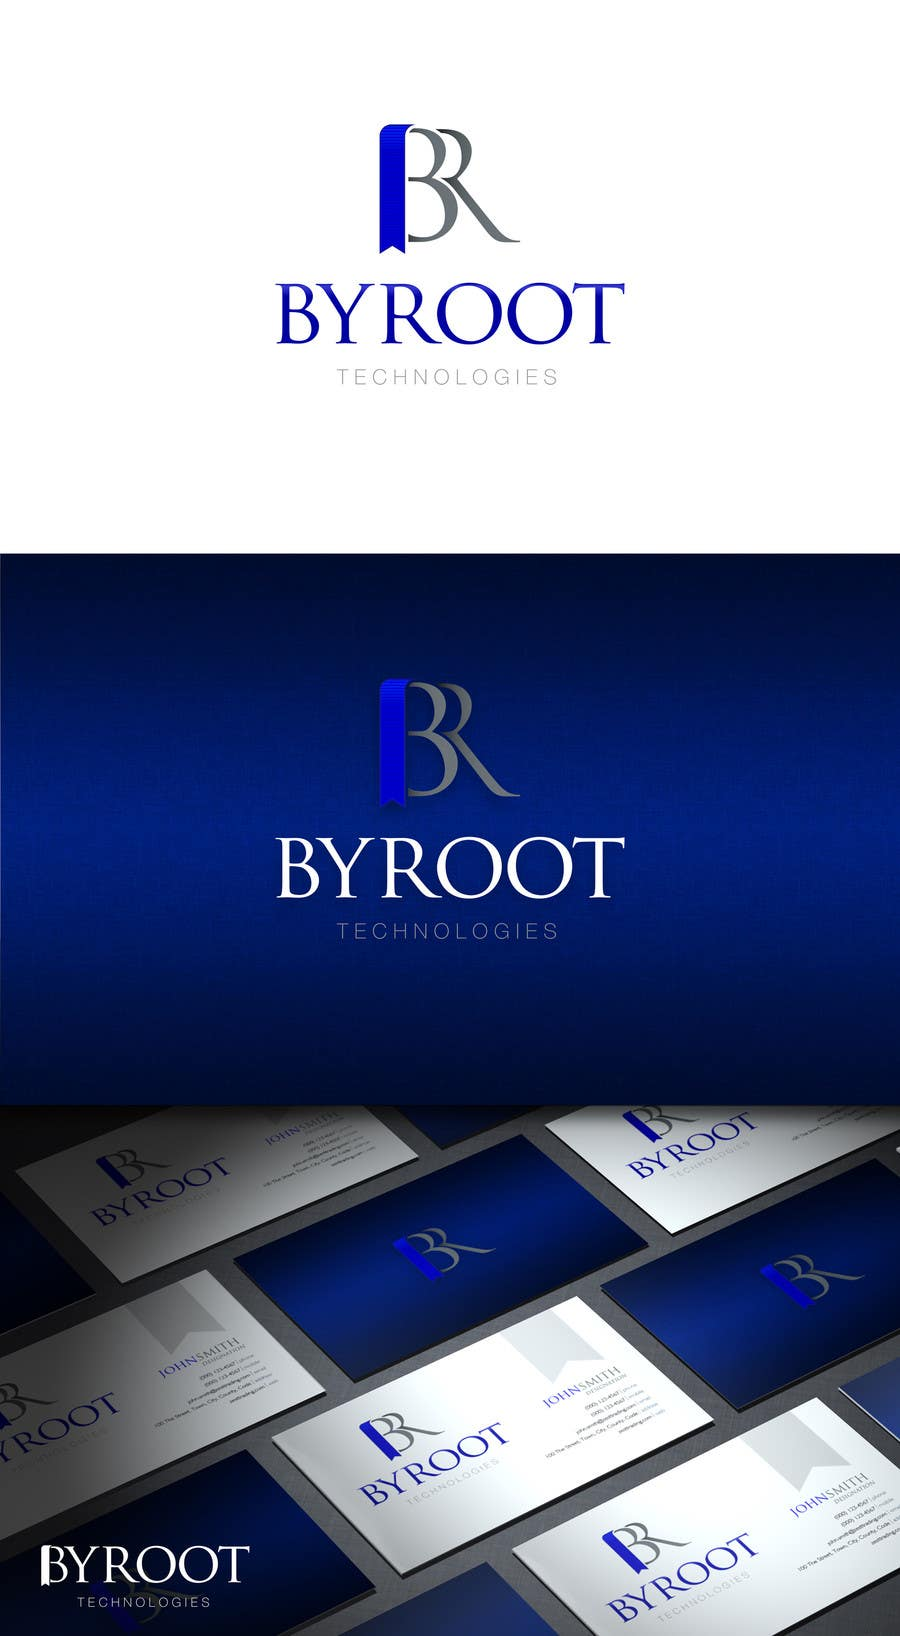 #48 for Develop a Corporate Identity for byroot Technologies by HallidayBooks